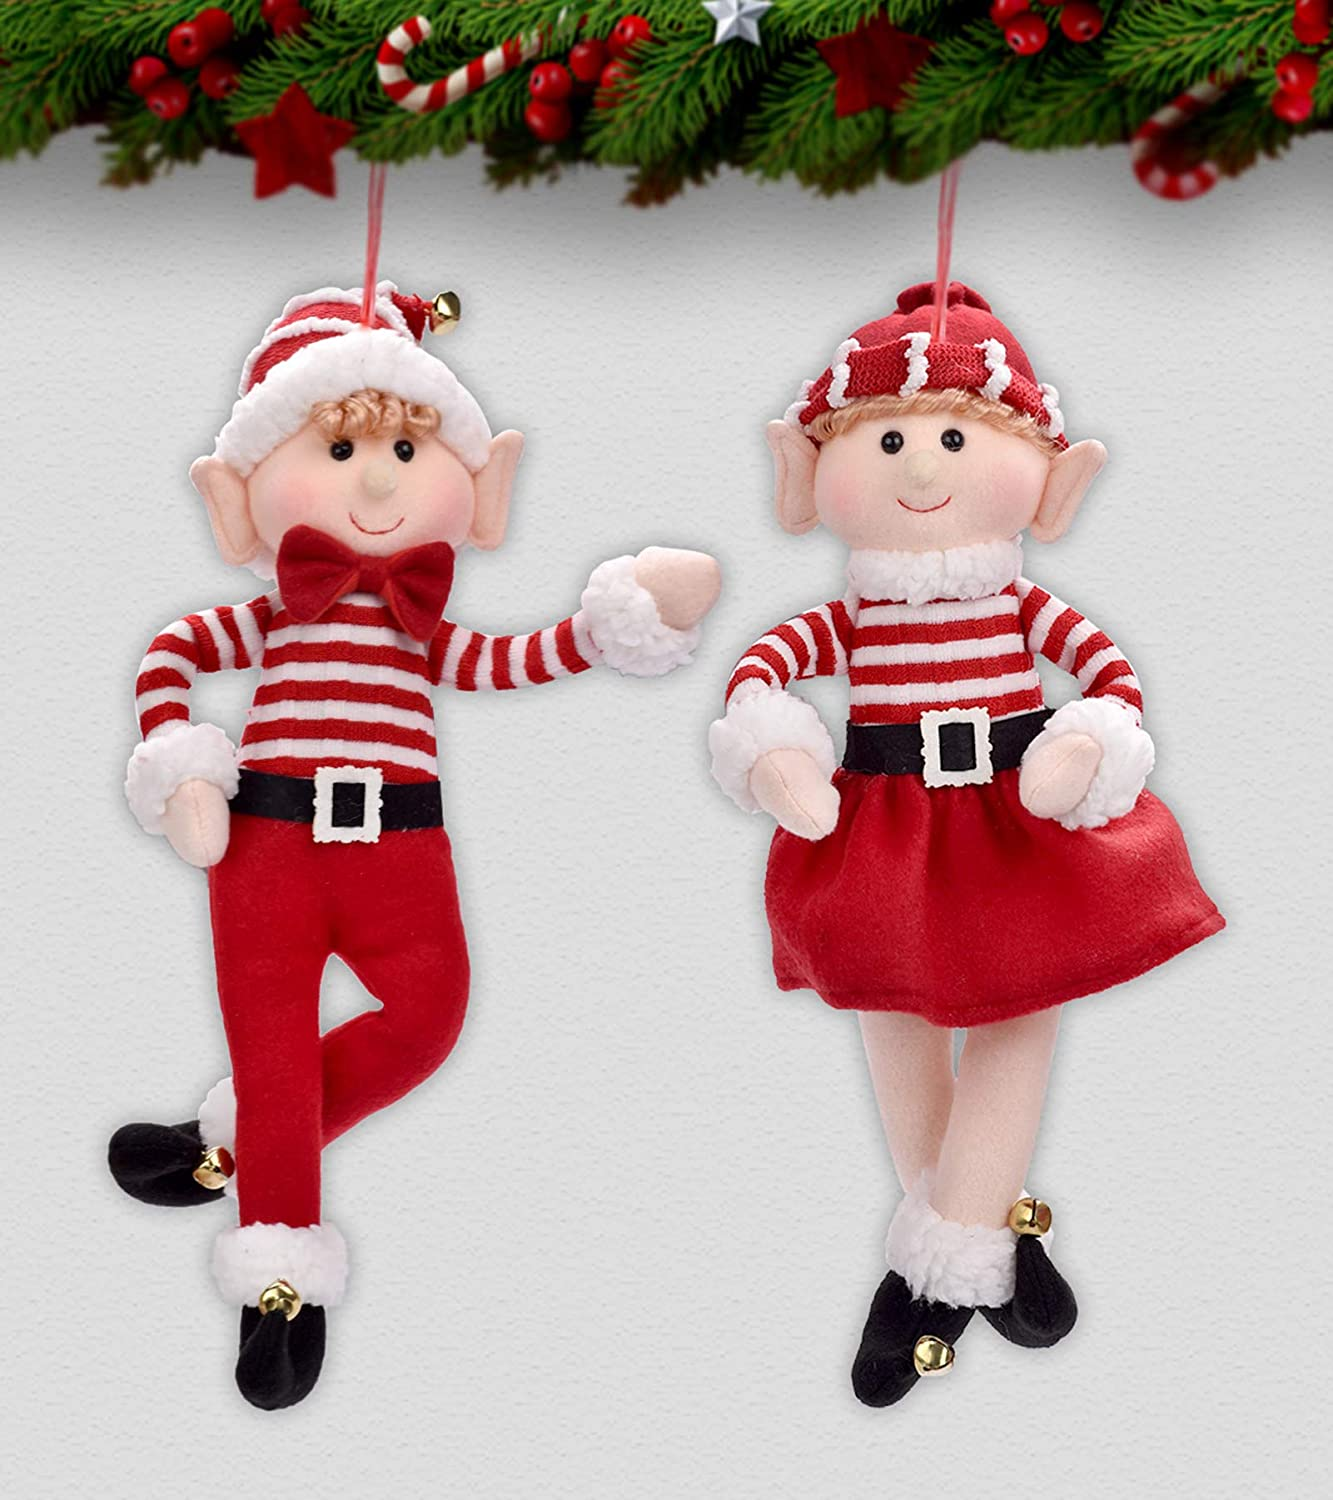 Elf Christmas Decor Boy and Girl 2 Pack Elves Christams Ornaments for Tree Decorations 2020 Elves Stuffed Animal for Festival